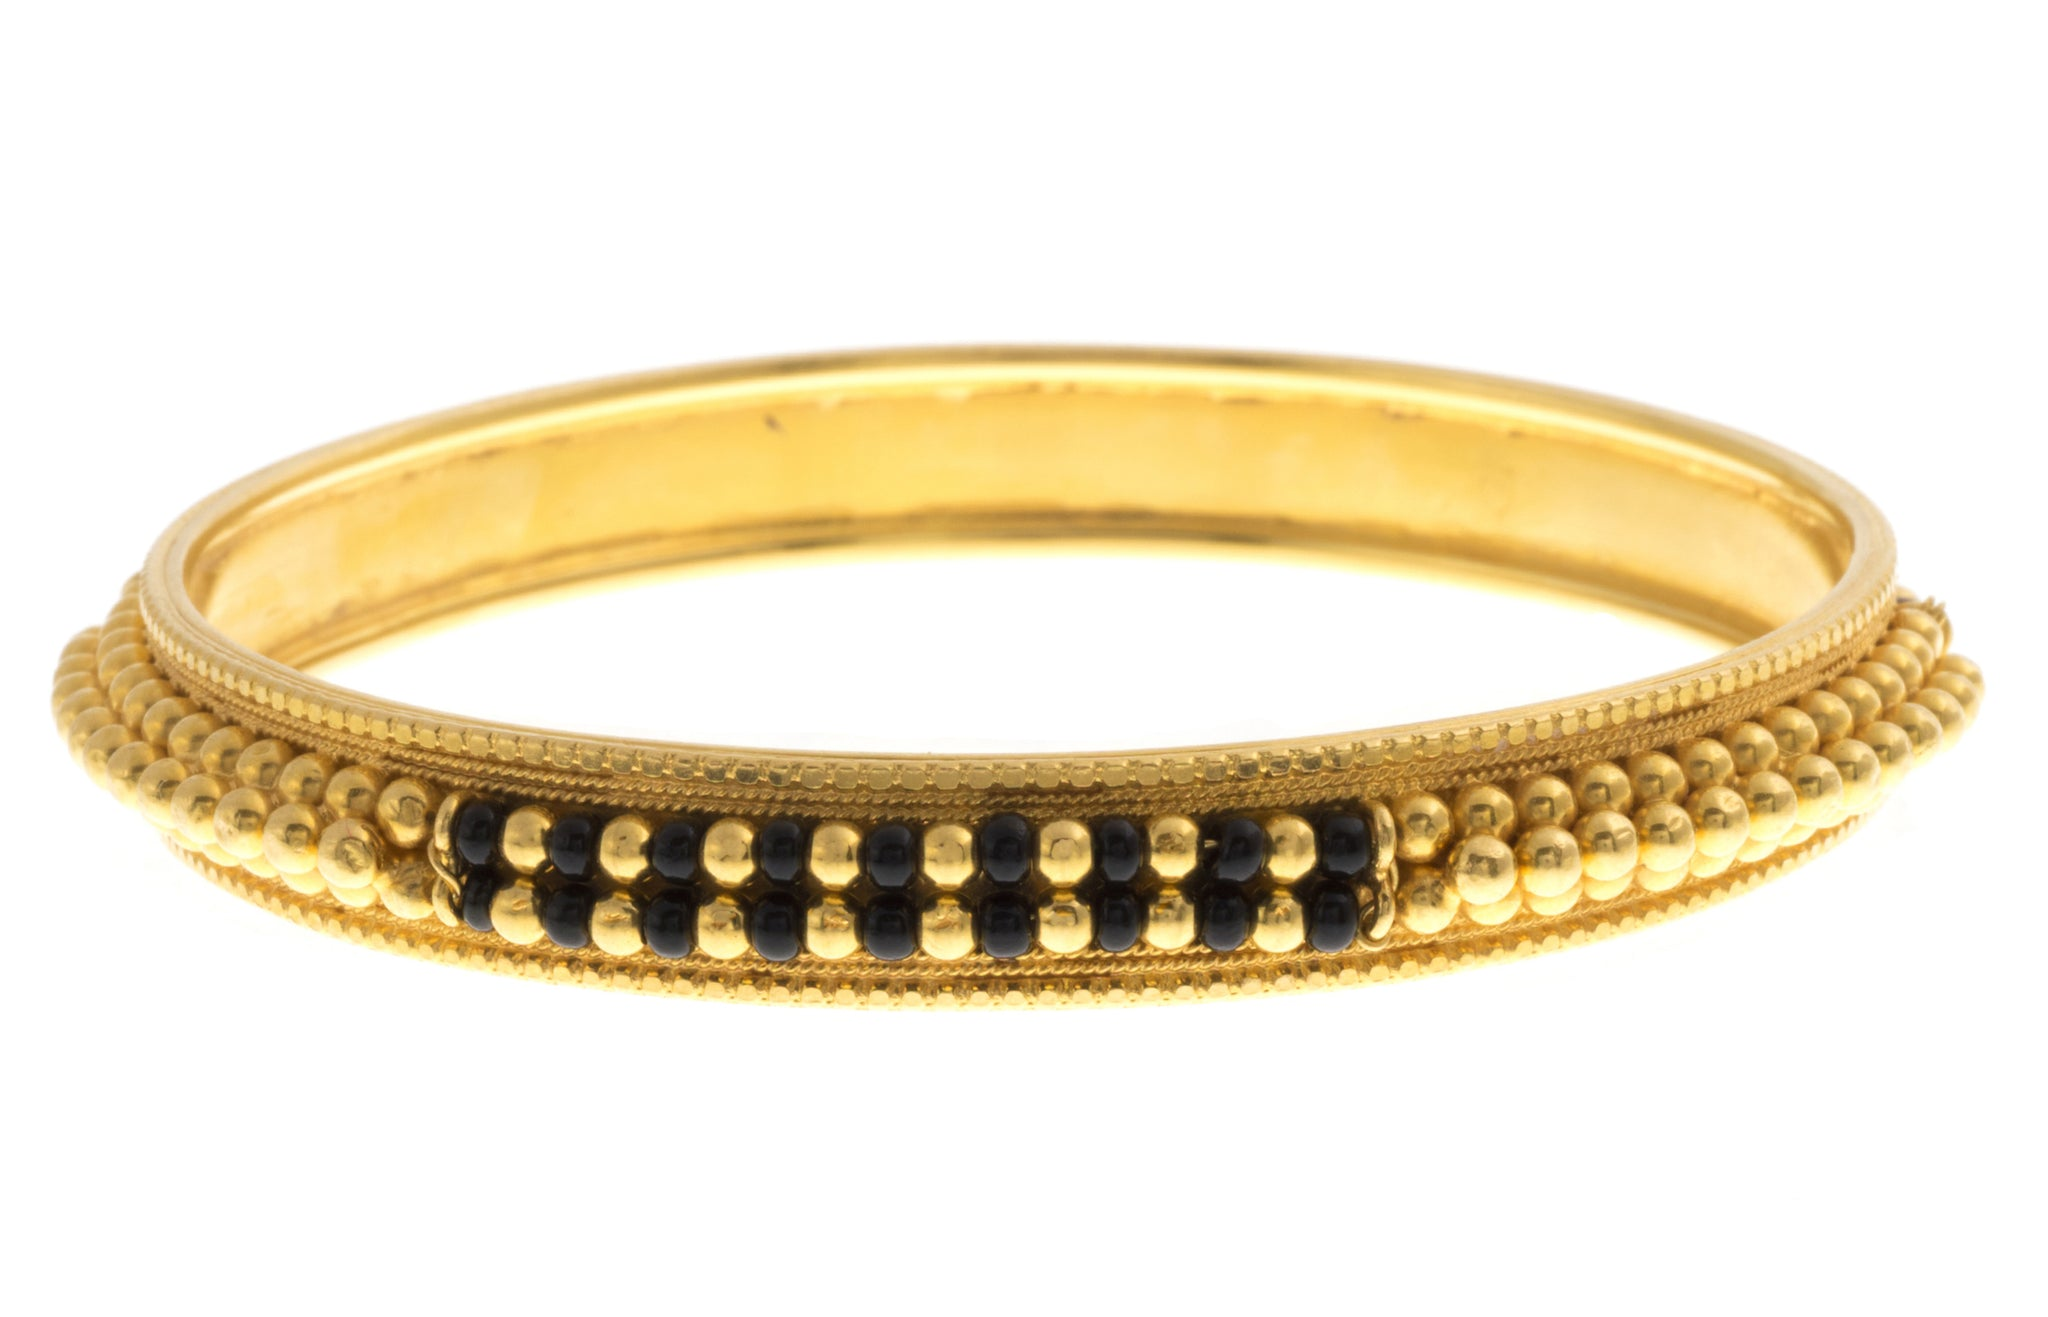 Hand Finished 22ct Yellow Gold Bangle (29.6g) (B-1564)